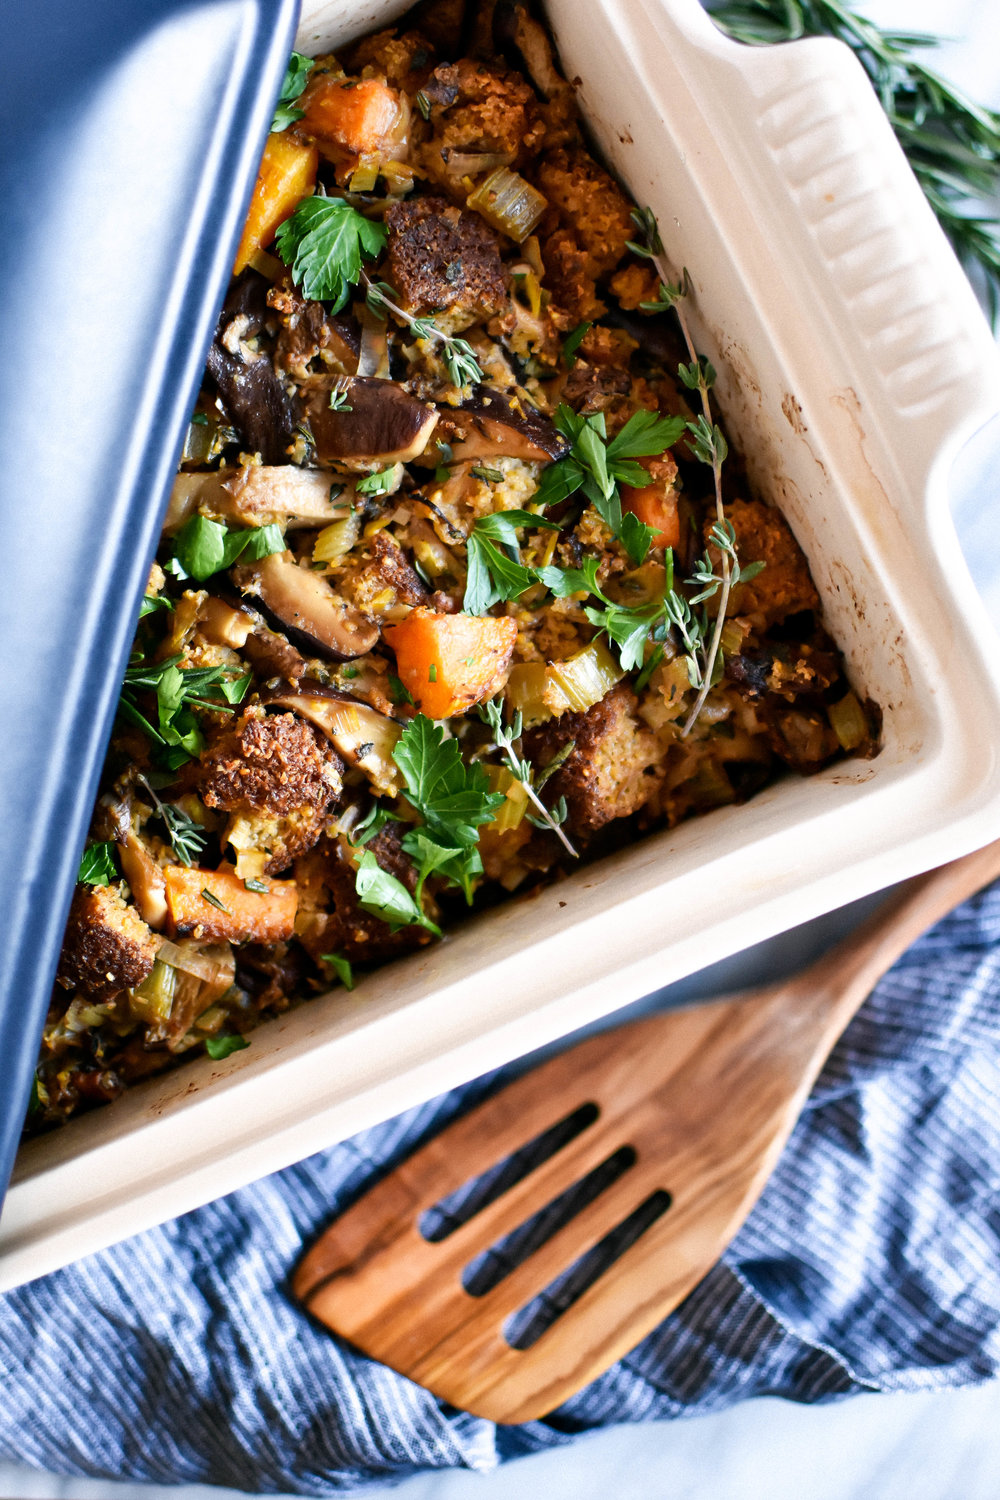 Vegan and gluten-free cornbread stuffing